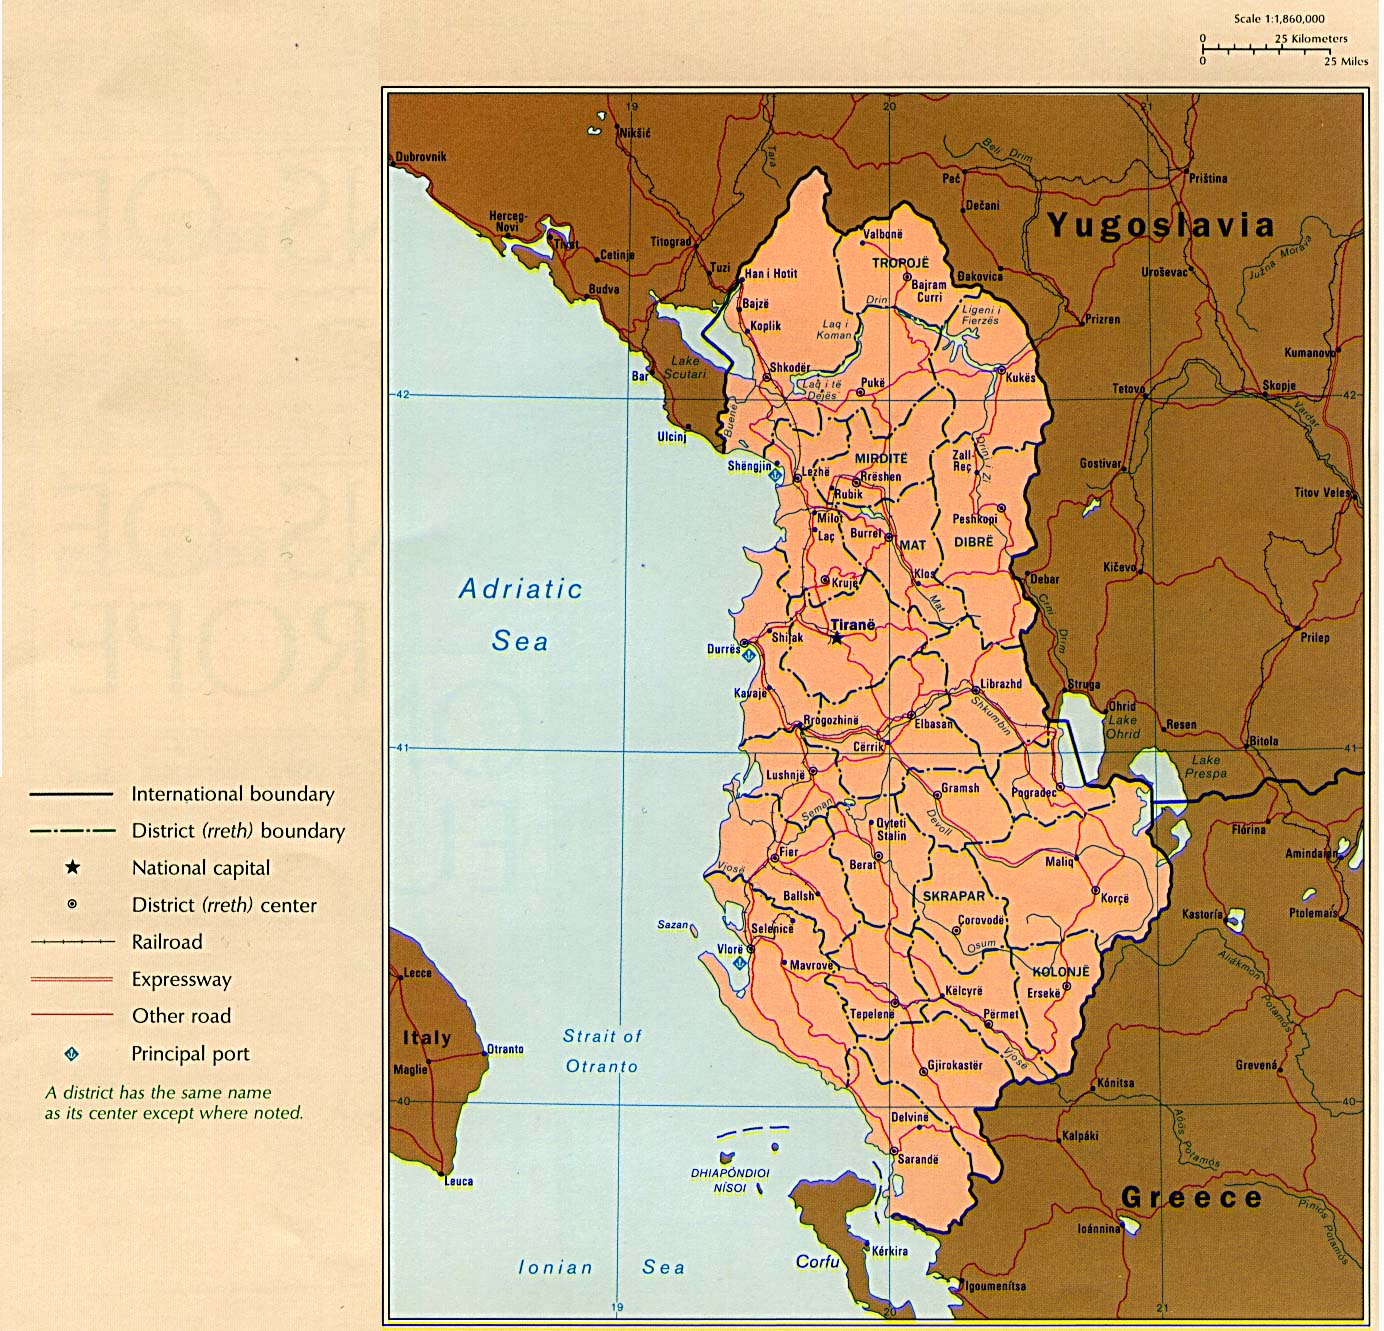 Maps of Albania | Albania detailed map in English | Tourist ... Small Map Of Albania on small map of el salvador, small map of bermuda, small map of iraq, small map of kuwait, small map of saudi arabia, small map of canada, small map of the united kingdom, small map of nicaragua, small map of guyana, small map of european countries, small map of dominican republic, small map of kenya, small map of yemen, small map of peru, small map of iceland, small map of zimbabwe, small map of finland, small map of honduras, small map of united states of america, small map of russia,